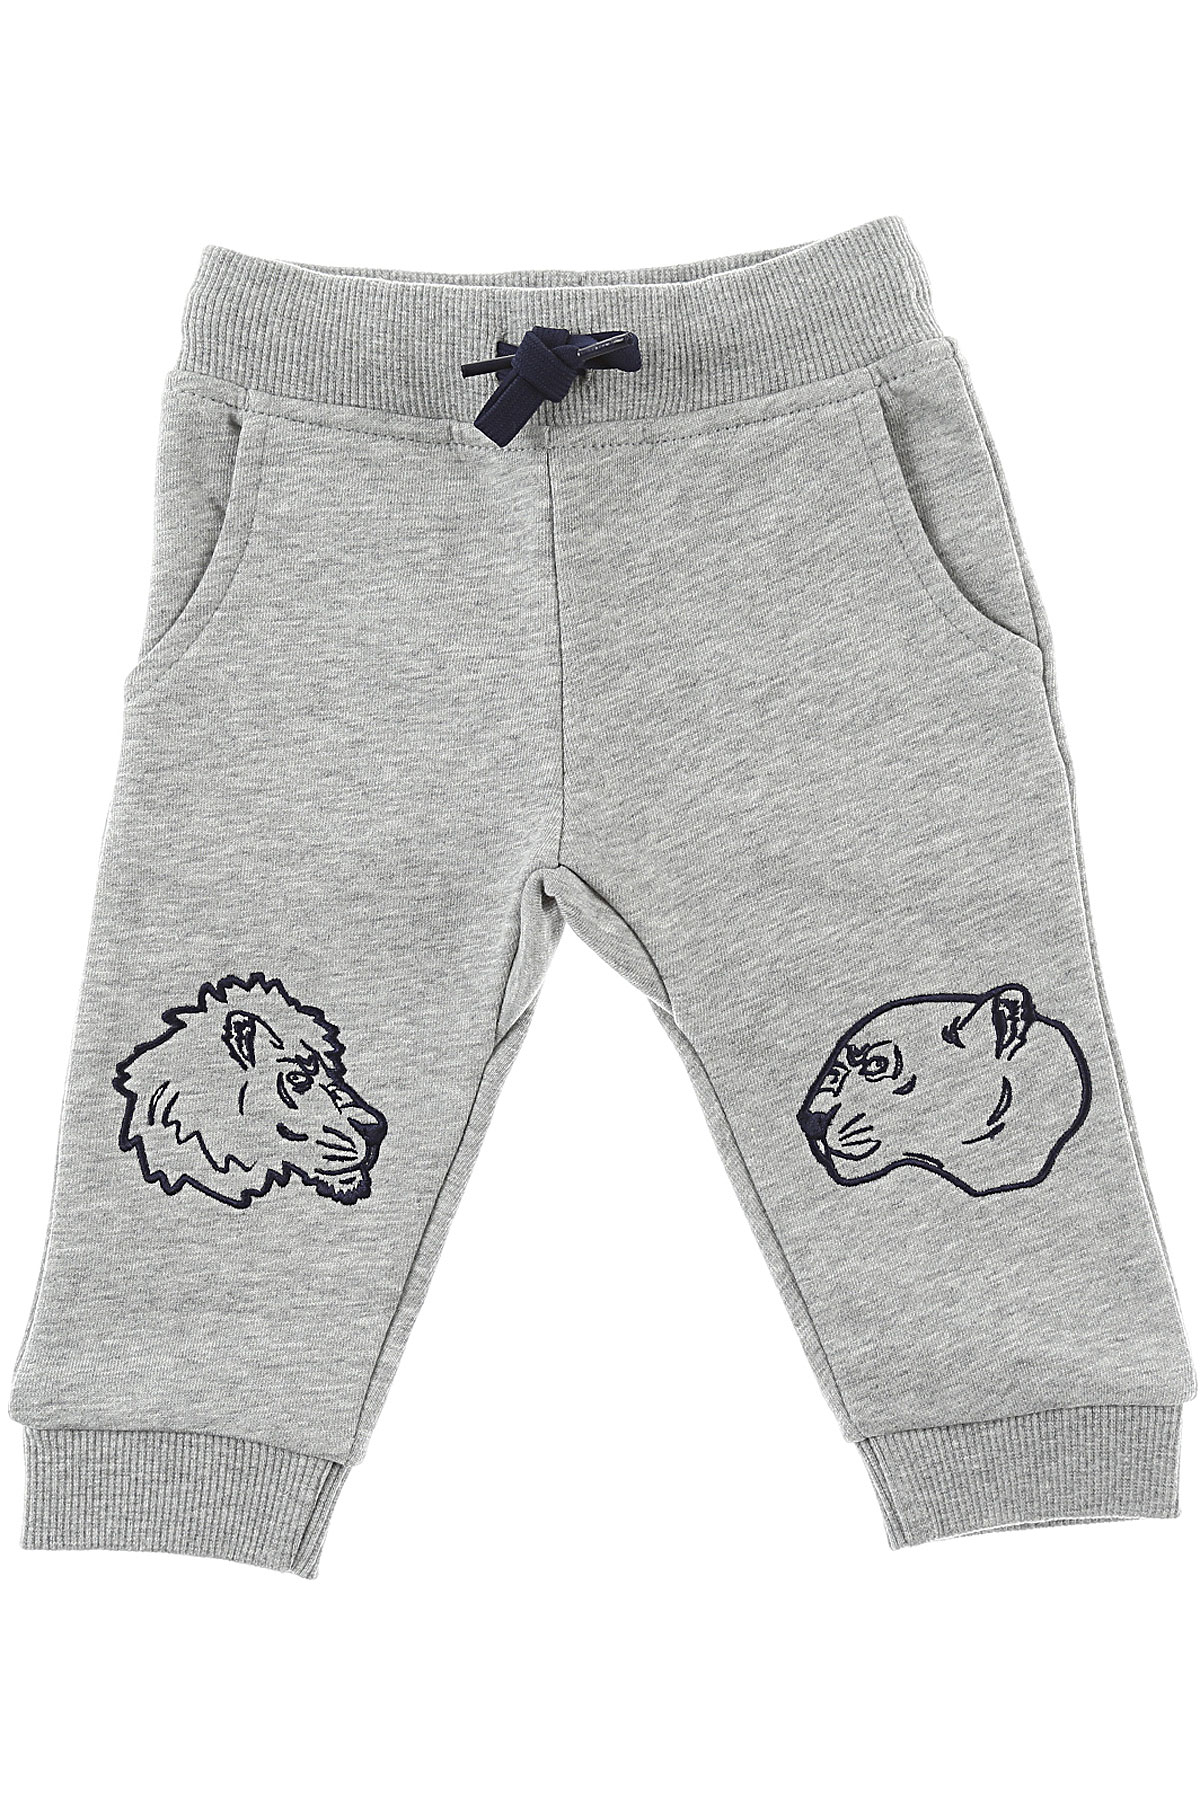 Image of Kenzo Baby Sweatpants for Boys, Grey, Cotton, 2017, 12M 18M 2Y 6M 9M